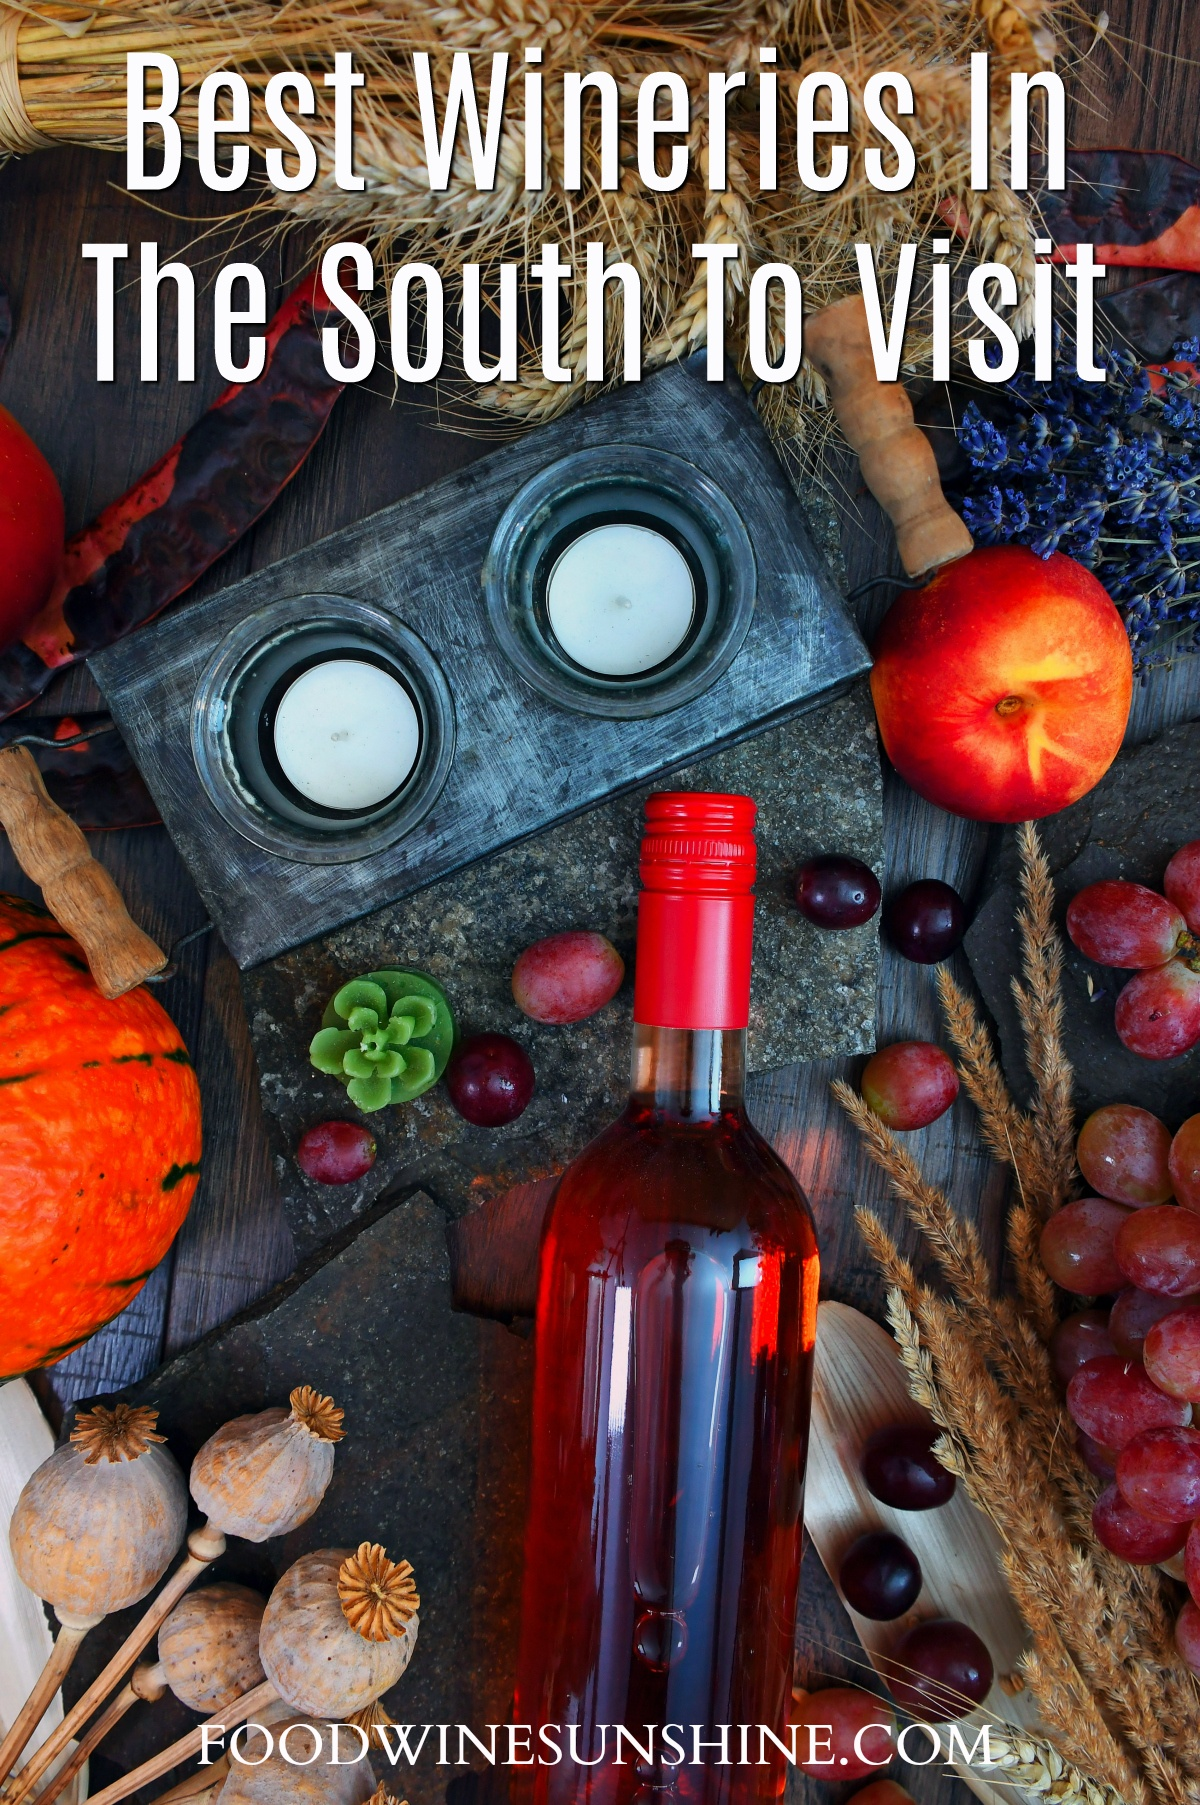 The Best Wineries In The South To Visit